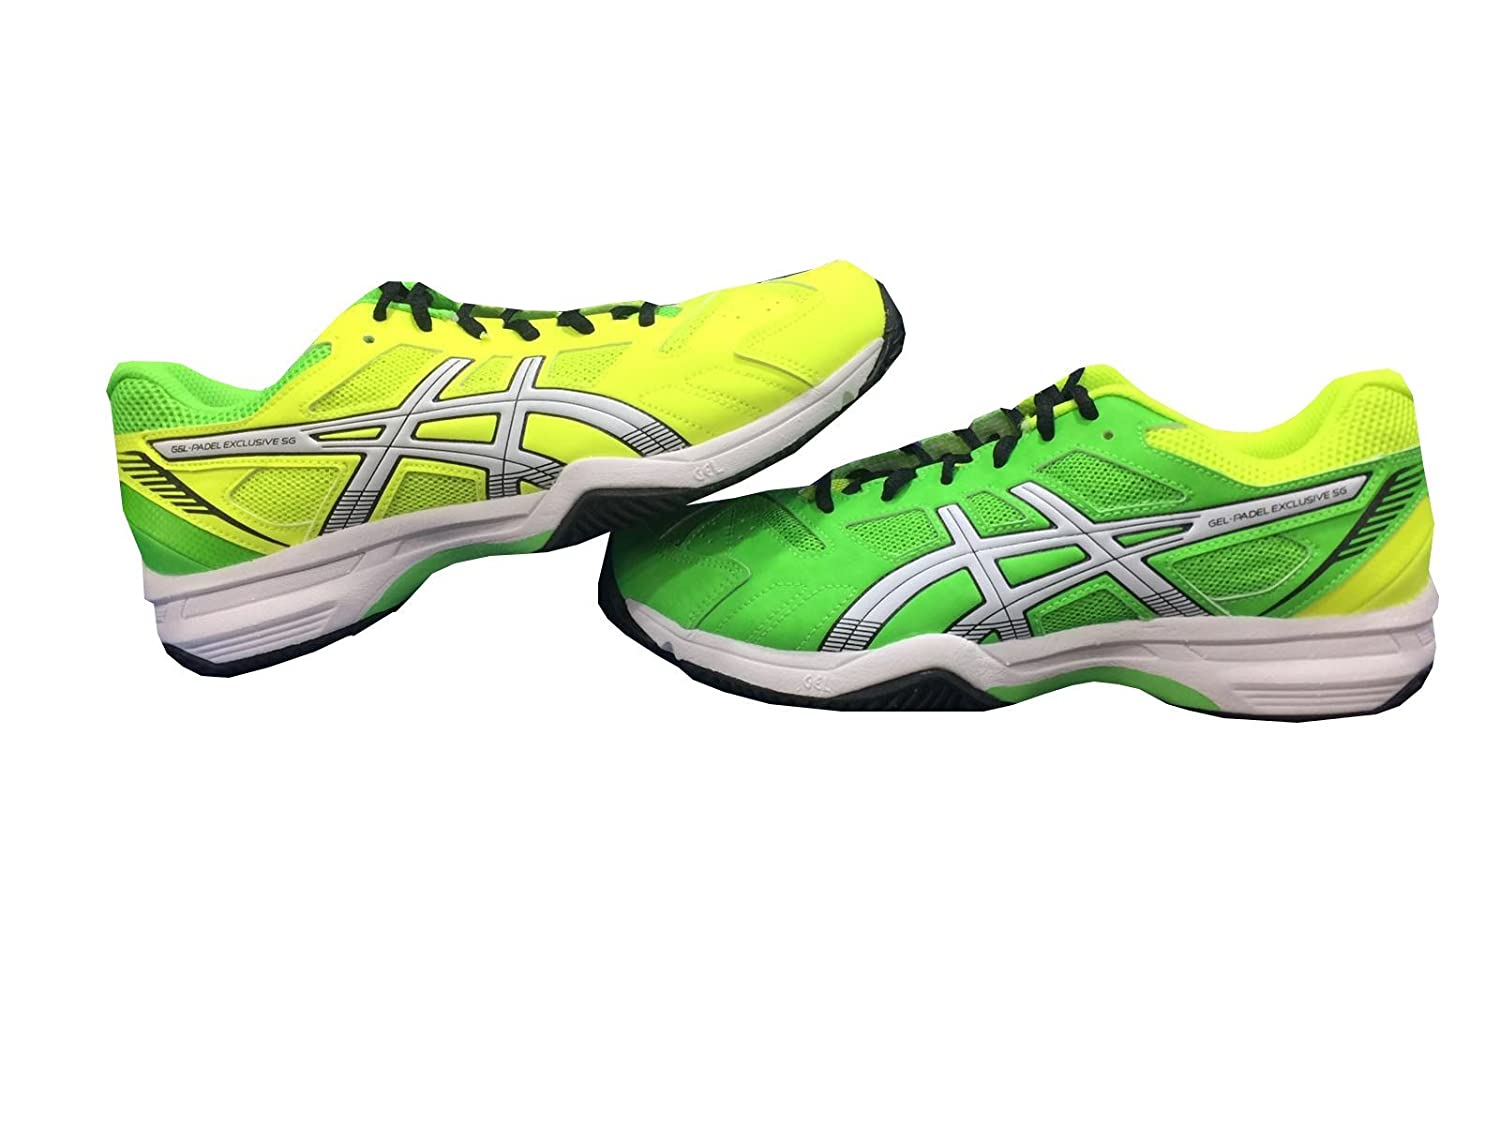 ASICS - Gel Padel Exclusive 4 SG, Color Green Gecko, Talla UK-9.5 ...